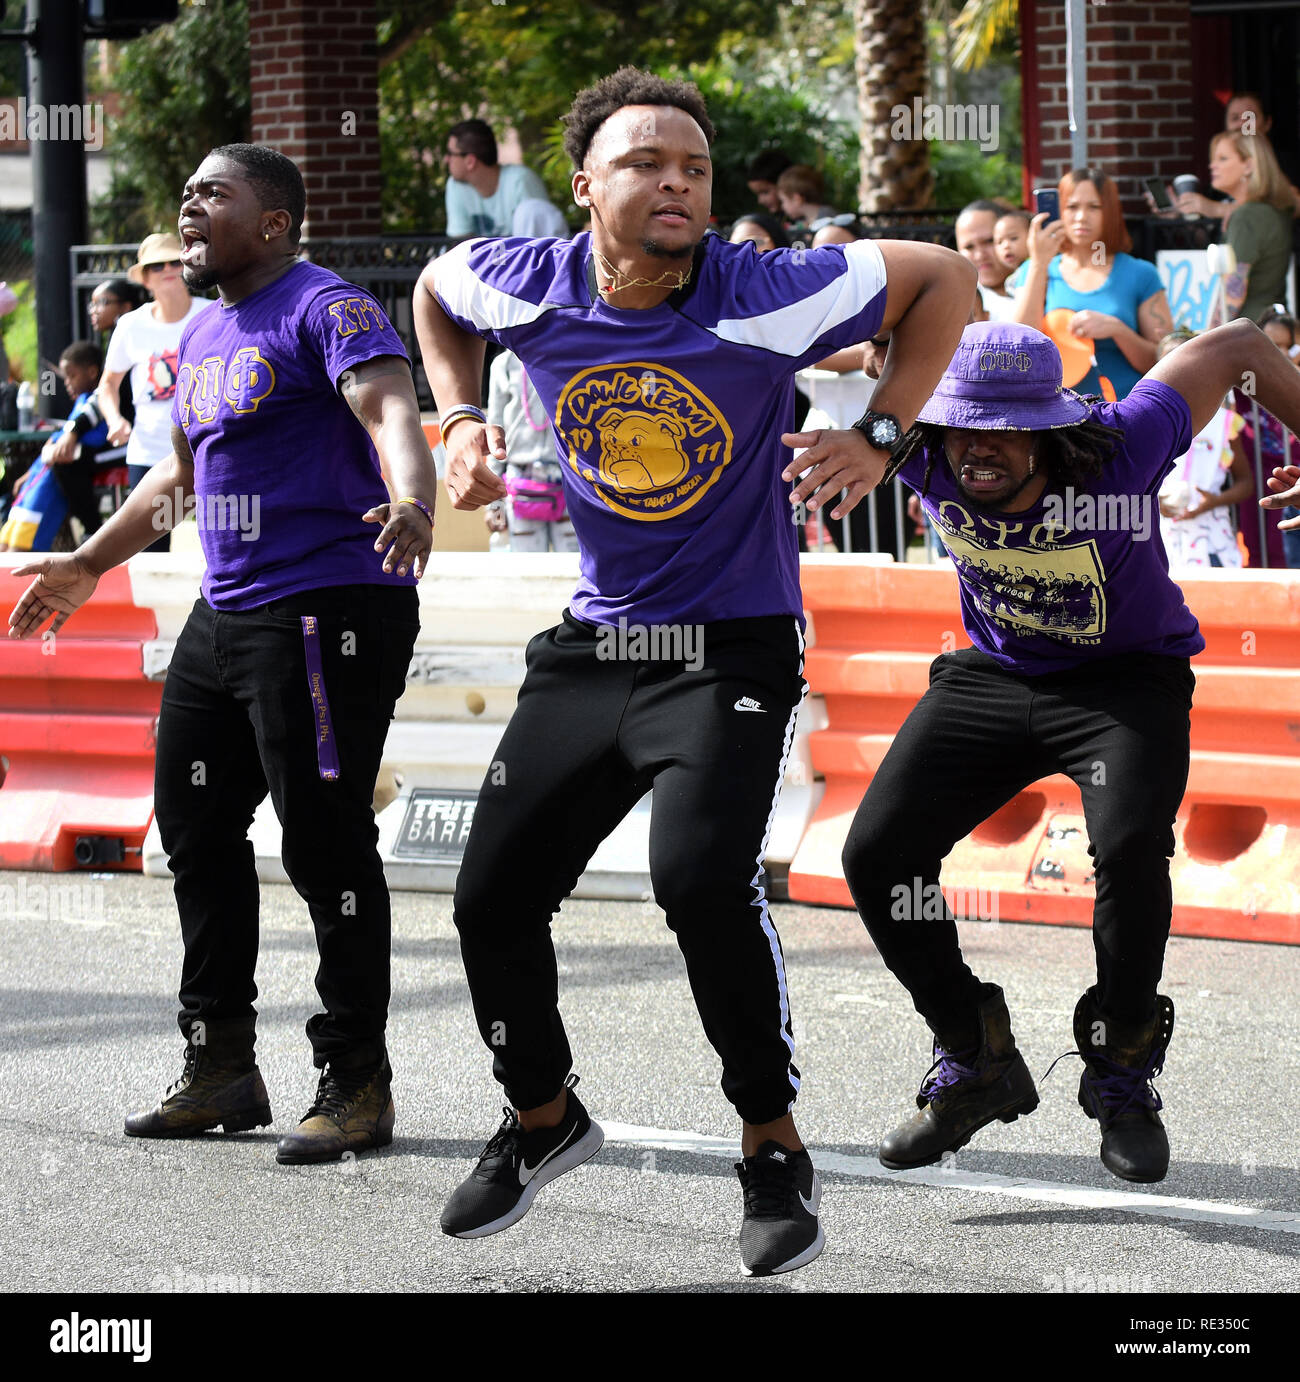 Florida, USA. 19th Jan 2019. Members of the Omega Psi Phi fraternity Que Doggs perform a dance in the annual Dr. Martin Luther King, Jr. Day Parade on January 19, 2019 in Orlando, Florida. (Paul Hennessy/Alamy) Credit: Paul Hennessy/Alamy Live News - Stock Image